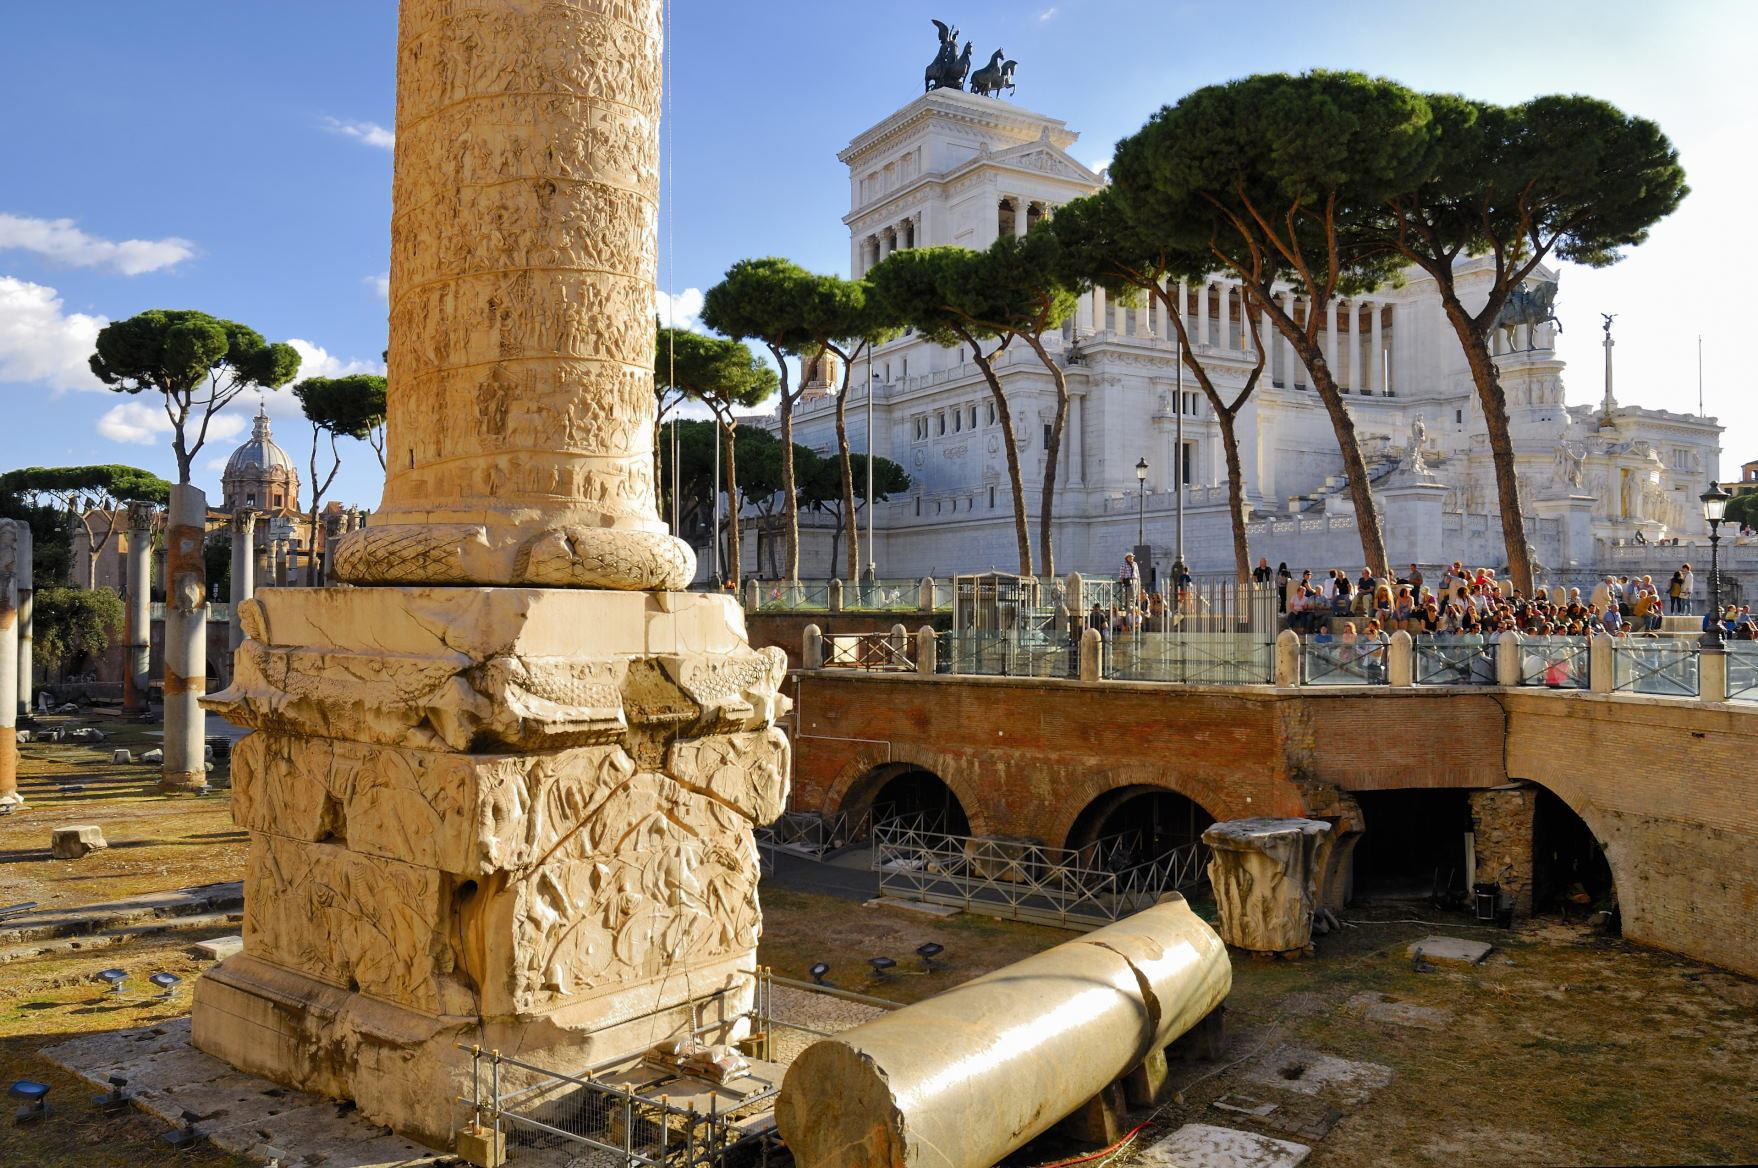 Forum and Trajan's Column, Rome's historic center, Italy.